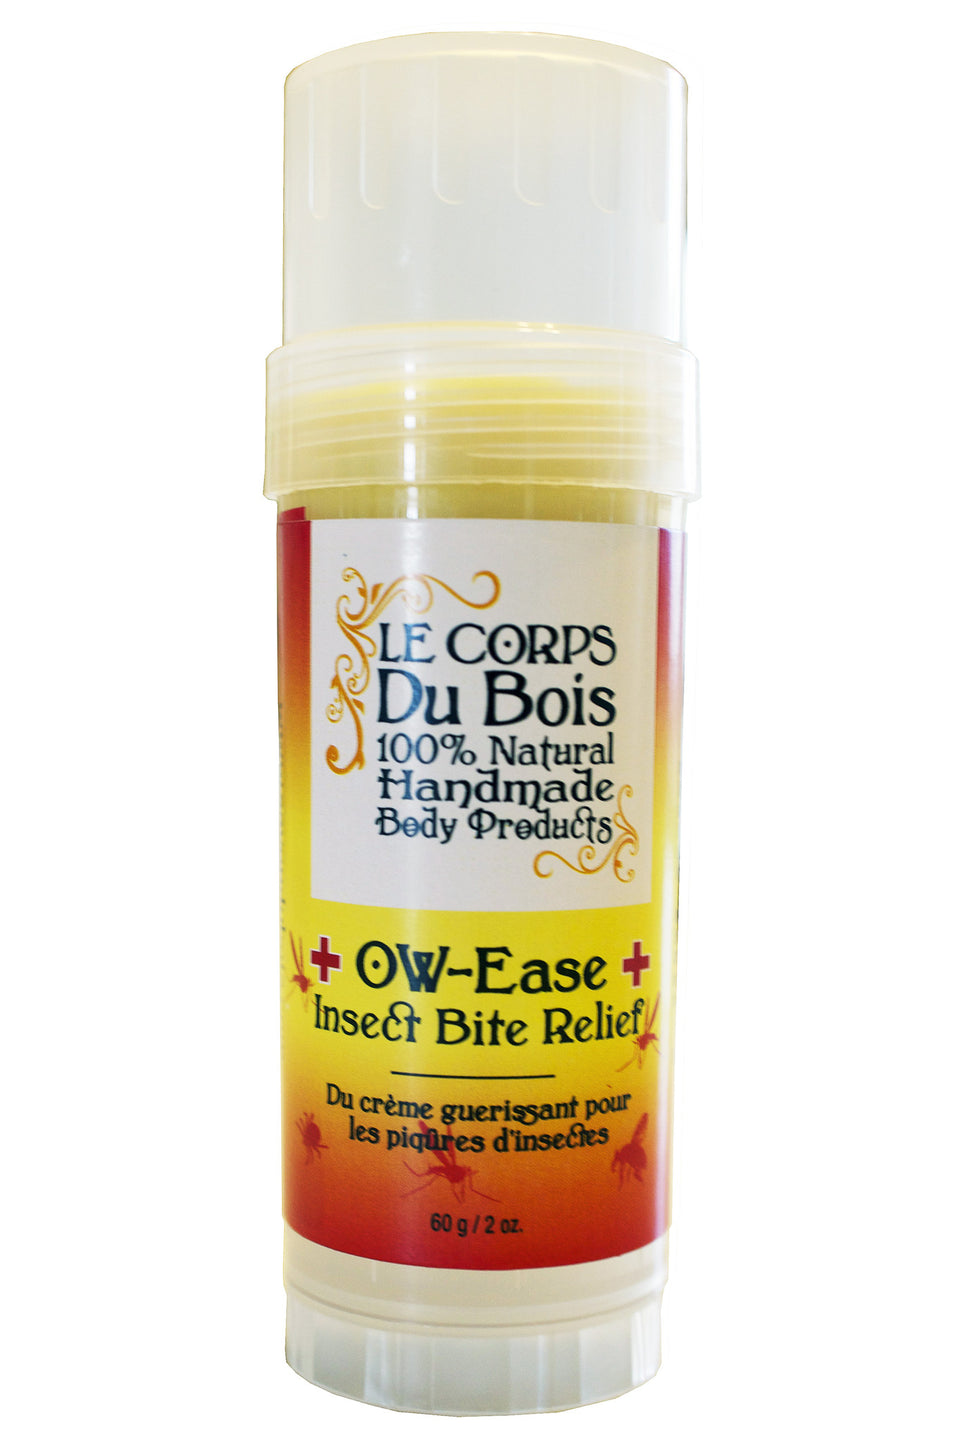 Ow-Ease Insect Bite Relief